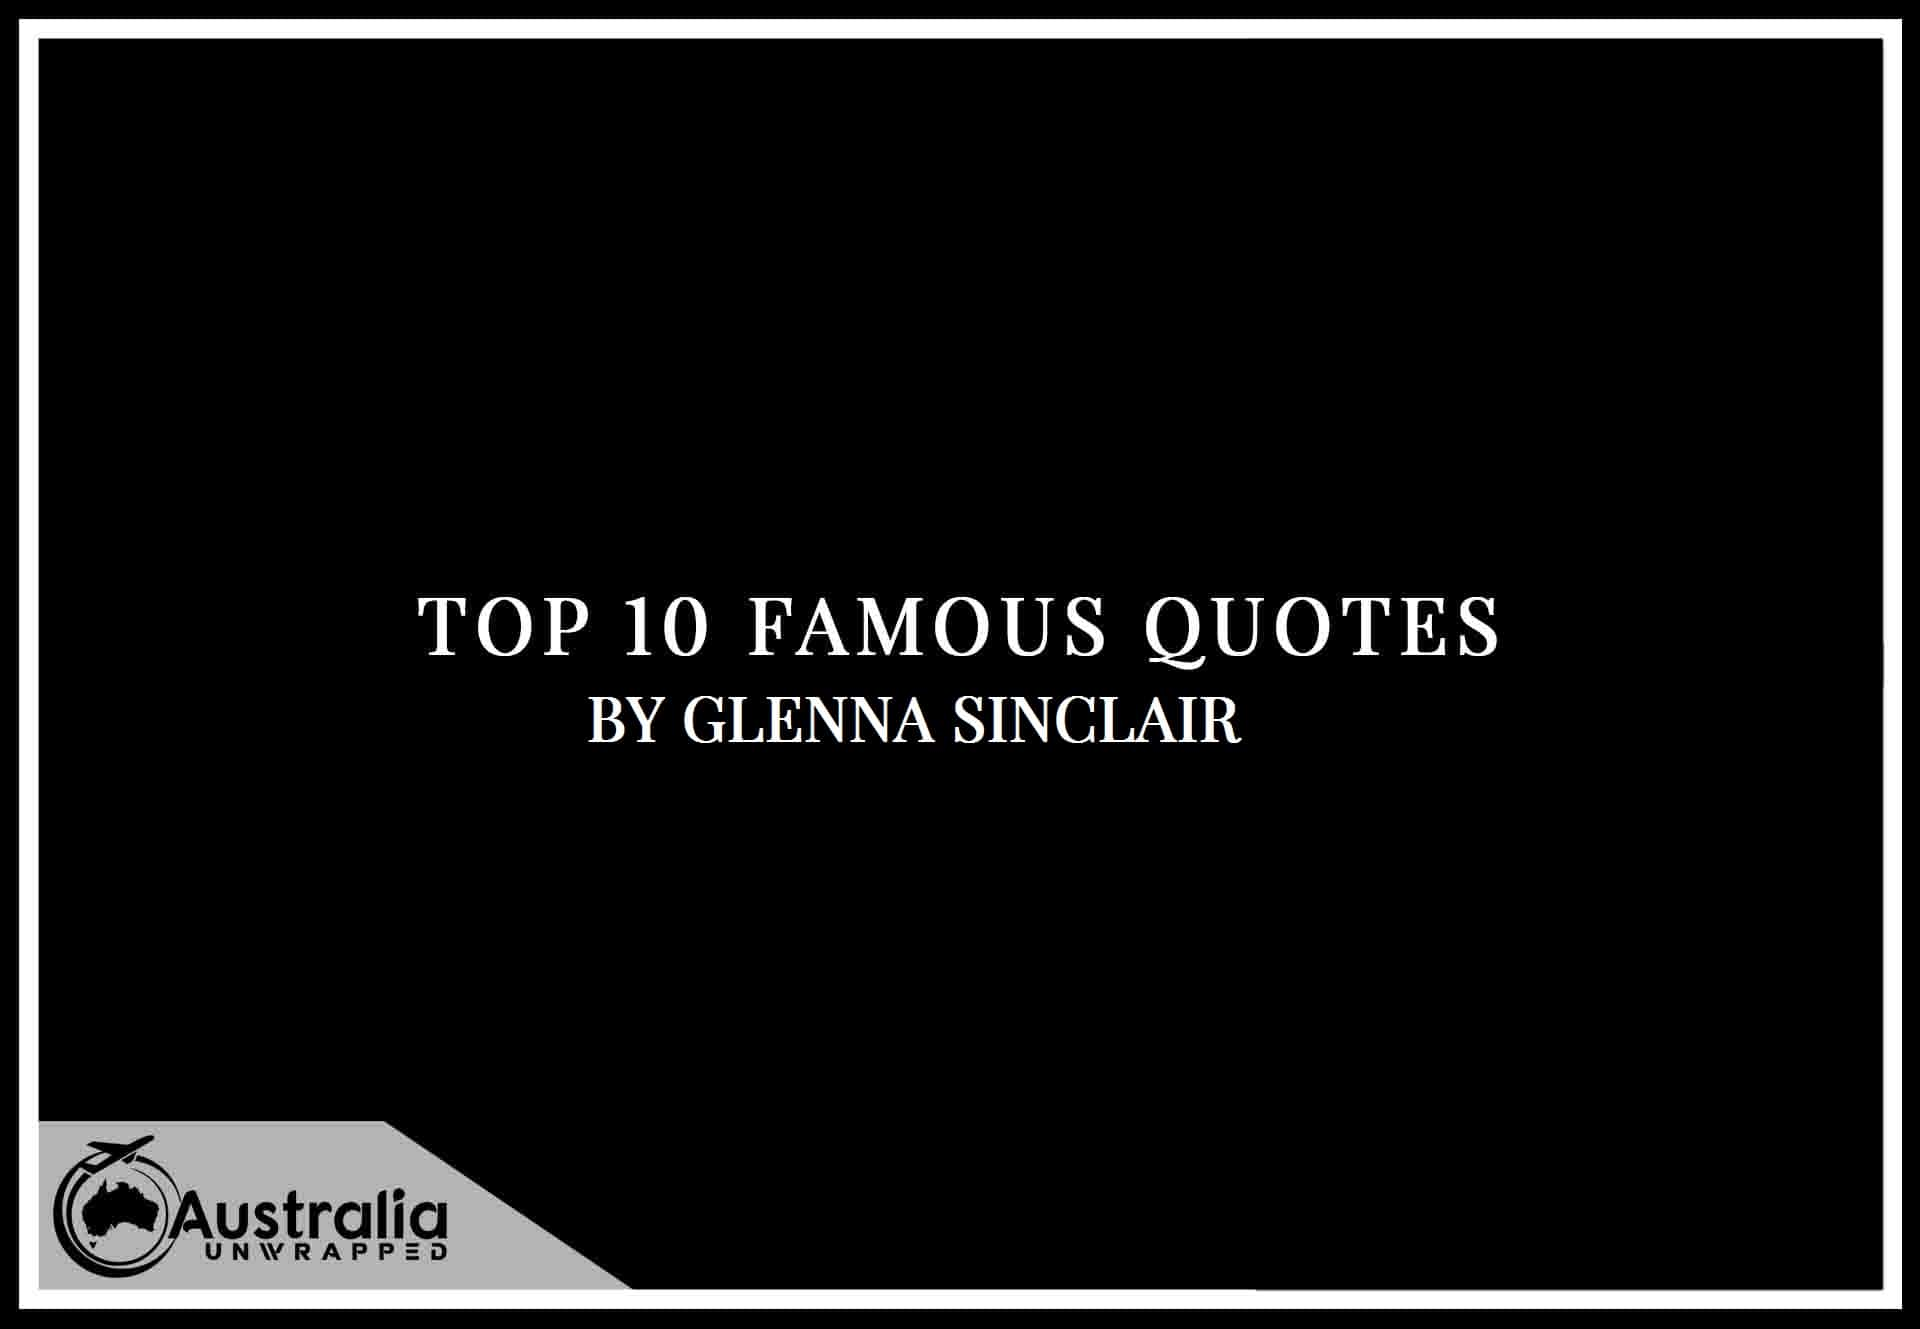 Glenna Sinclair's Top 10 Popular and Famous Quotes